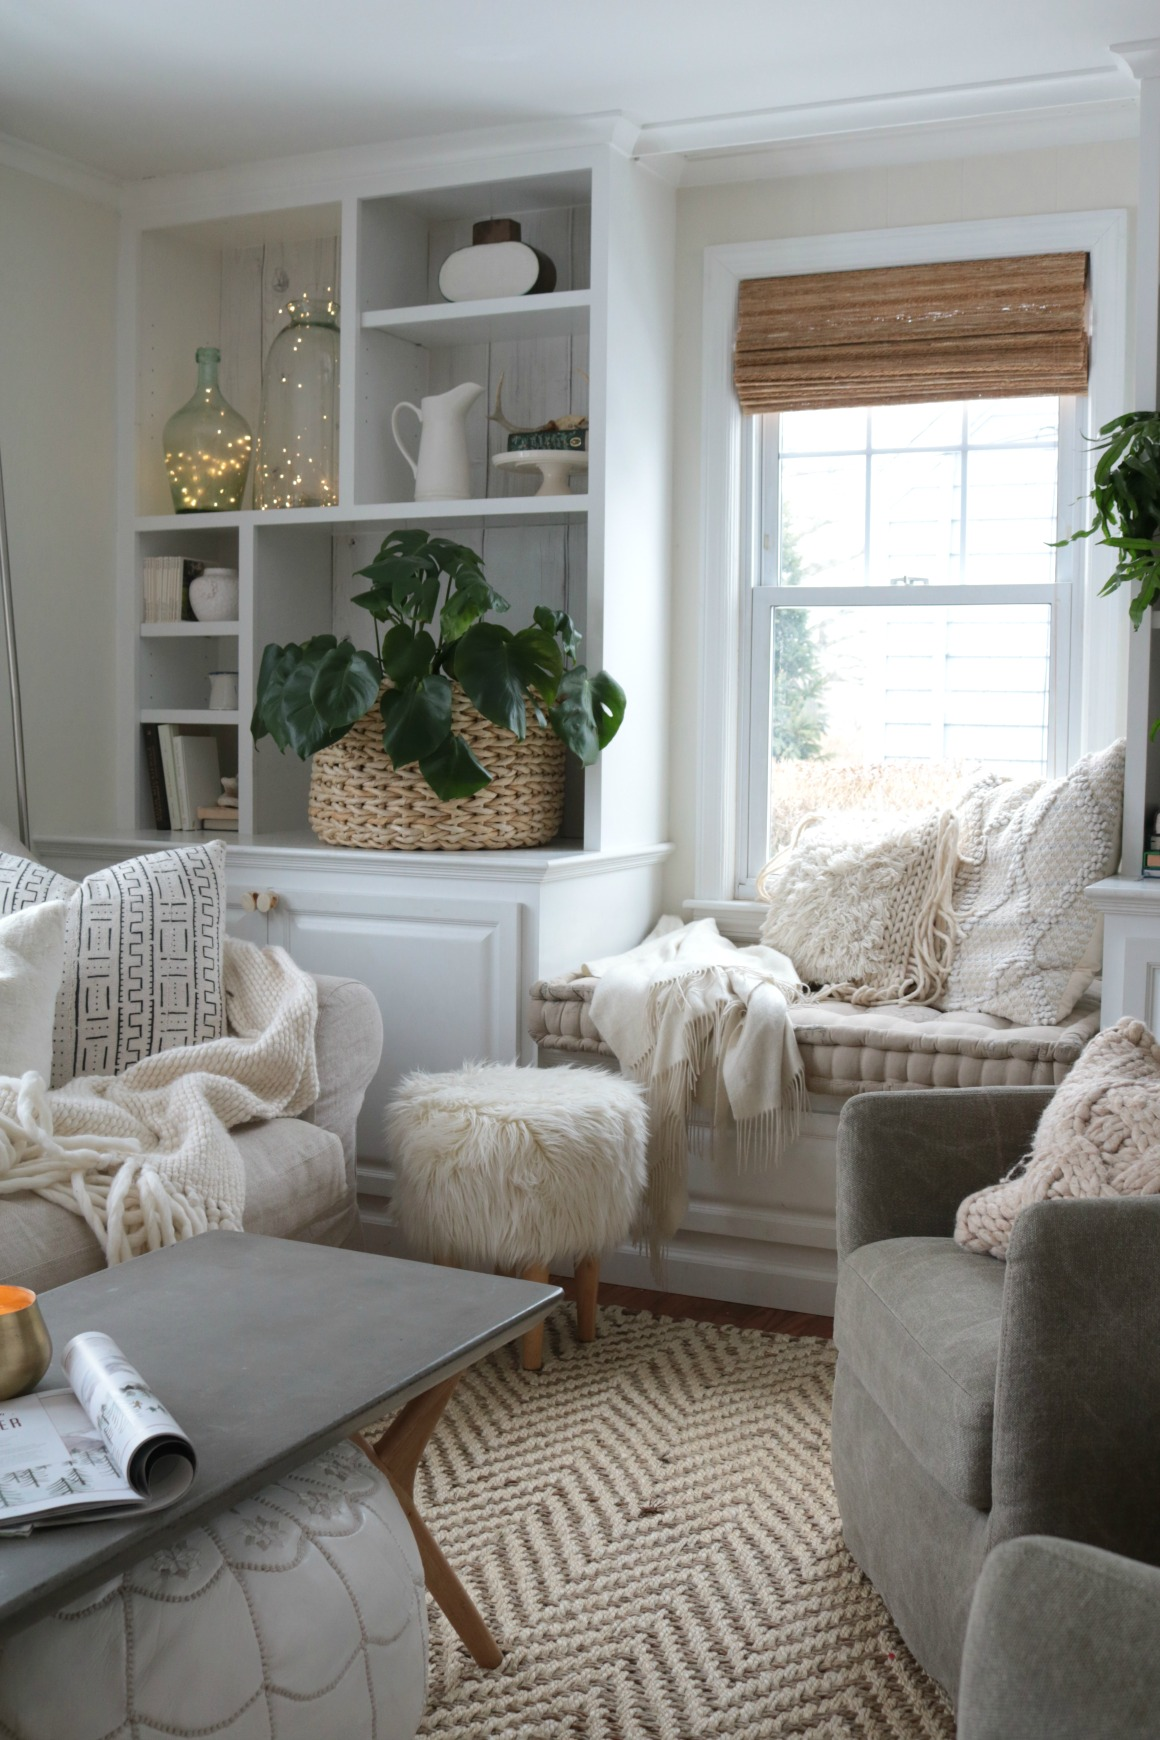 How to have a cozy home 4 simple tips nesting with grace for Creating a cozy home